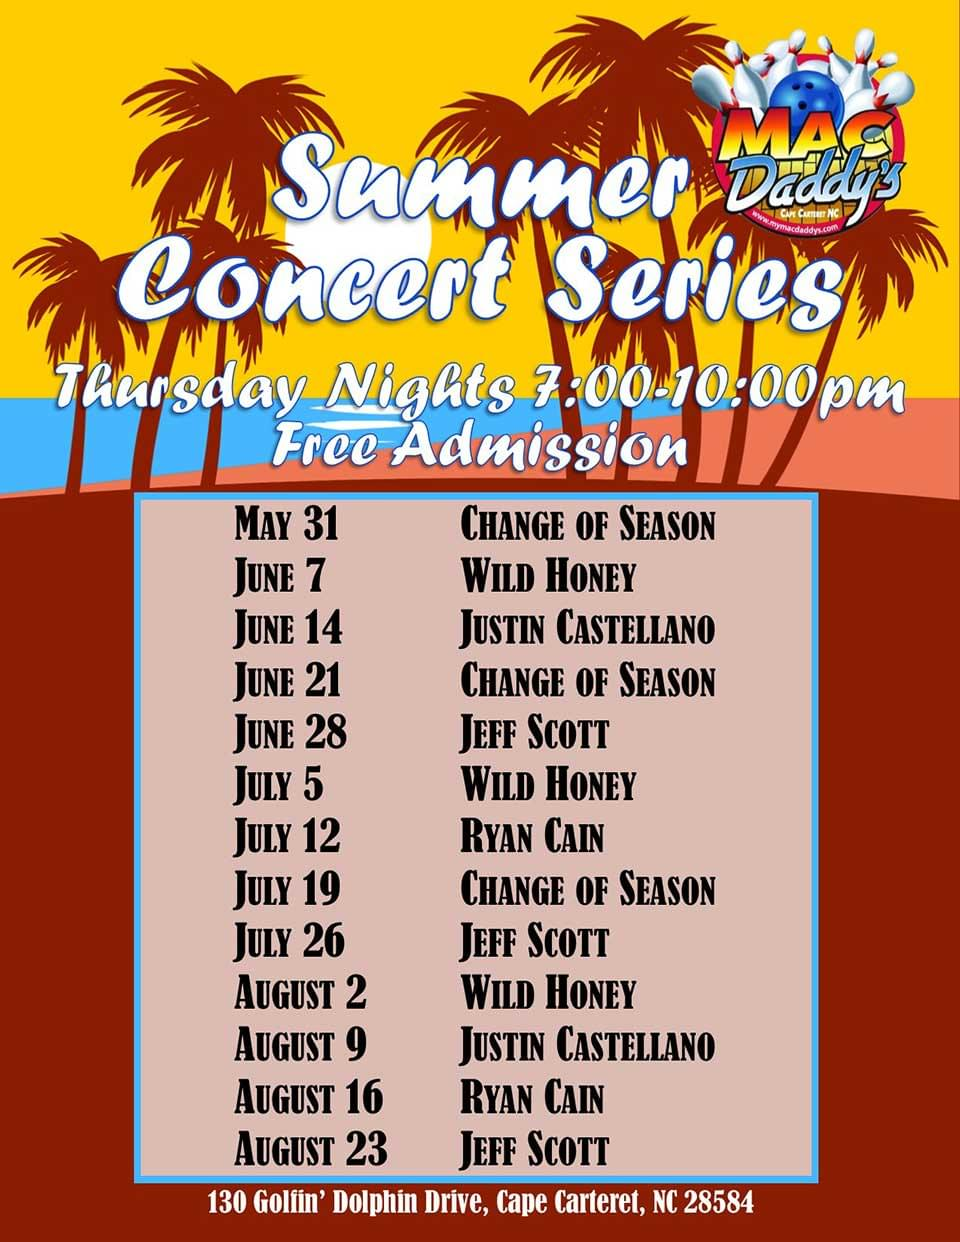 MacDaddy's Summer Concert Series